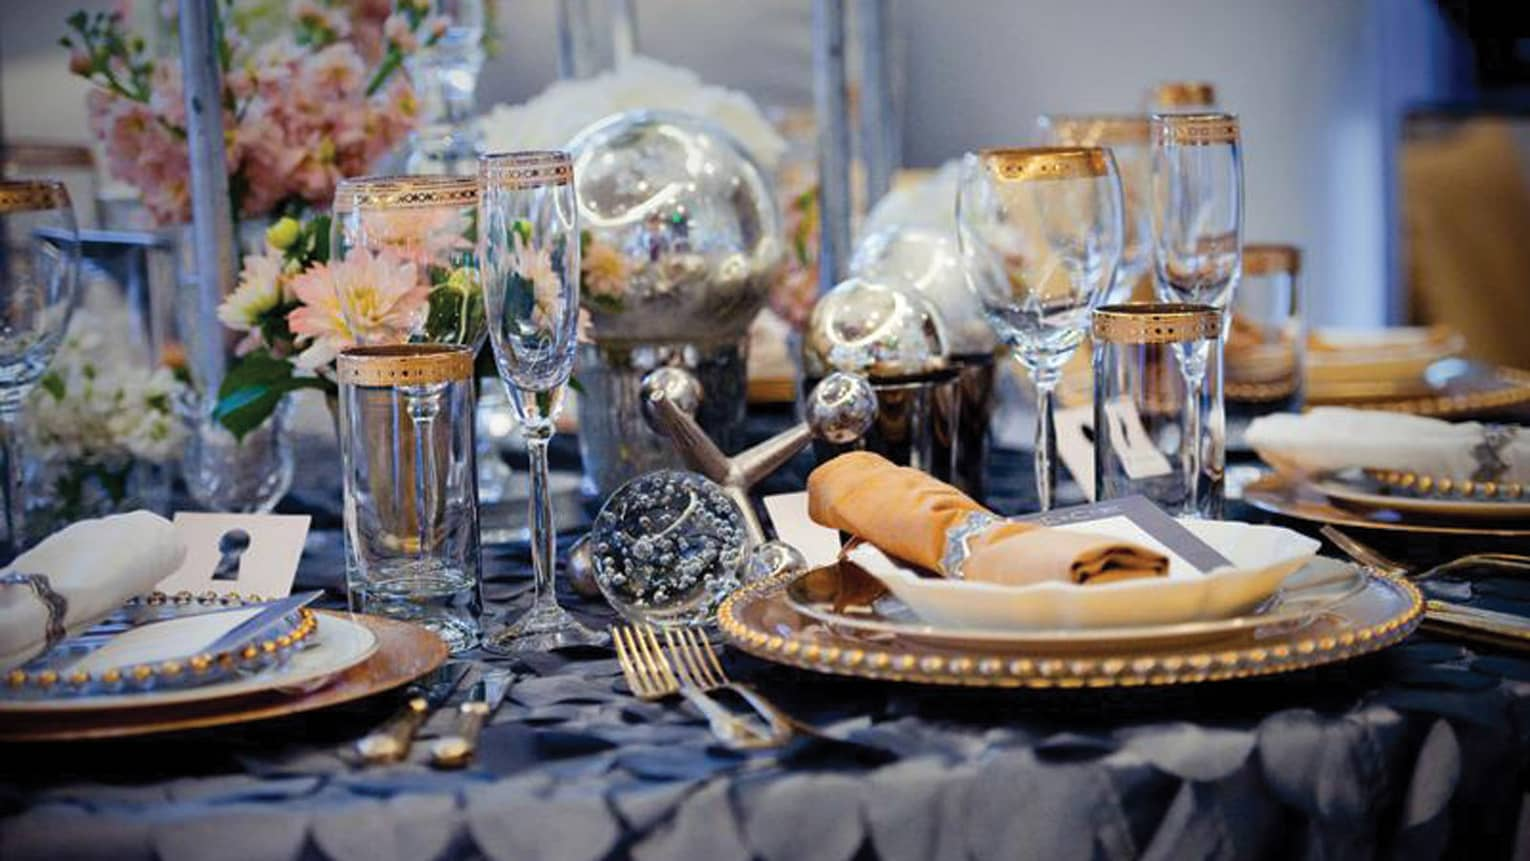 Close-up of banquet dining table setting with gold-rimmed glassware and plates, roses